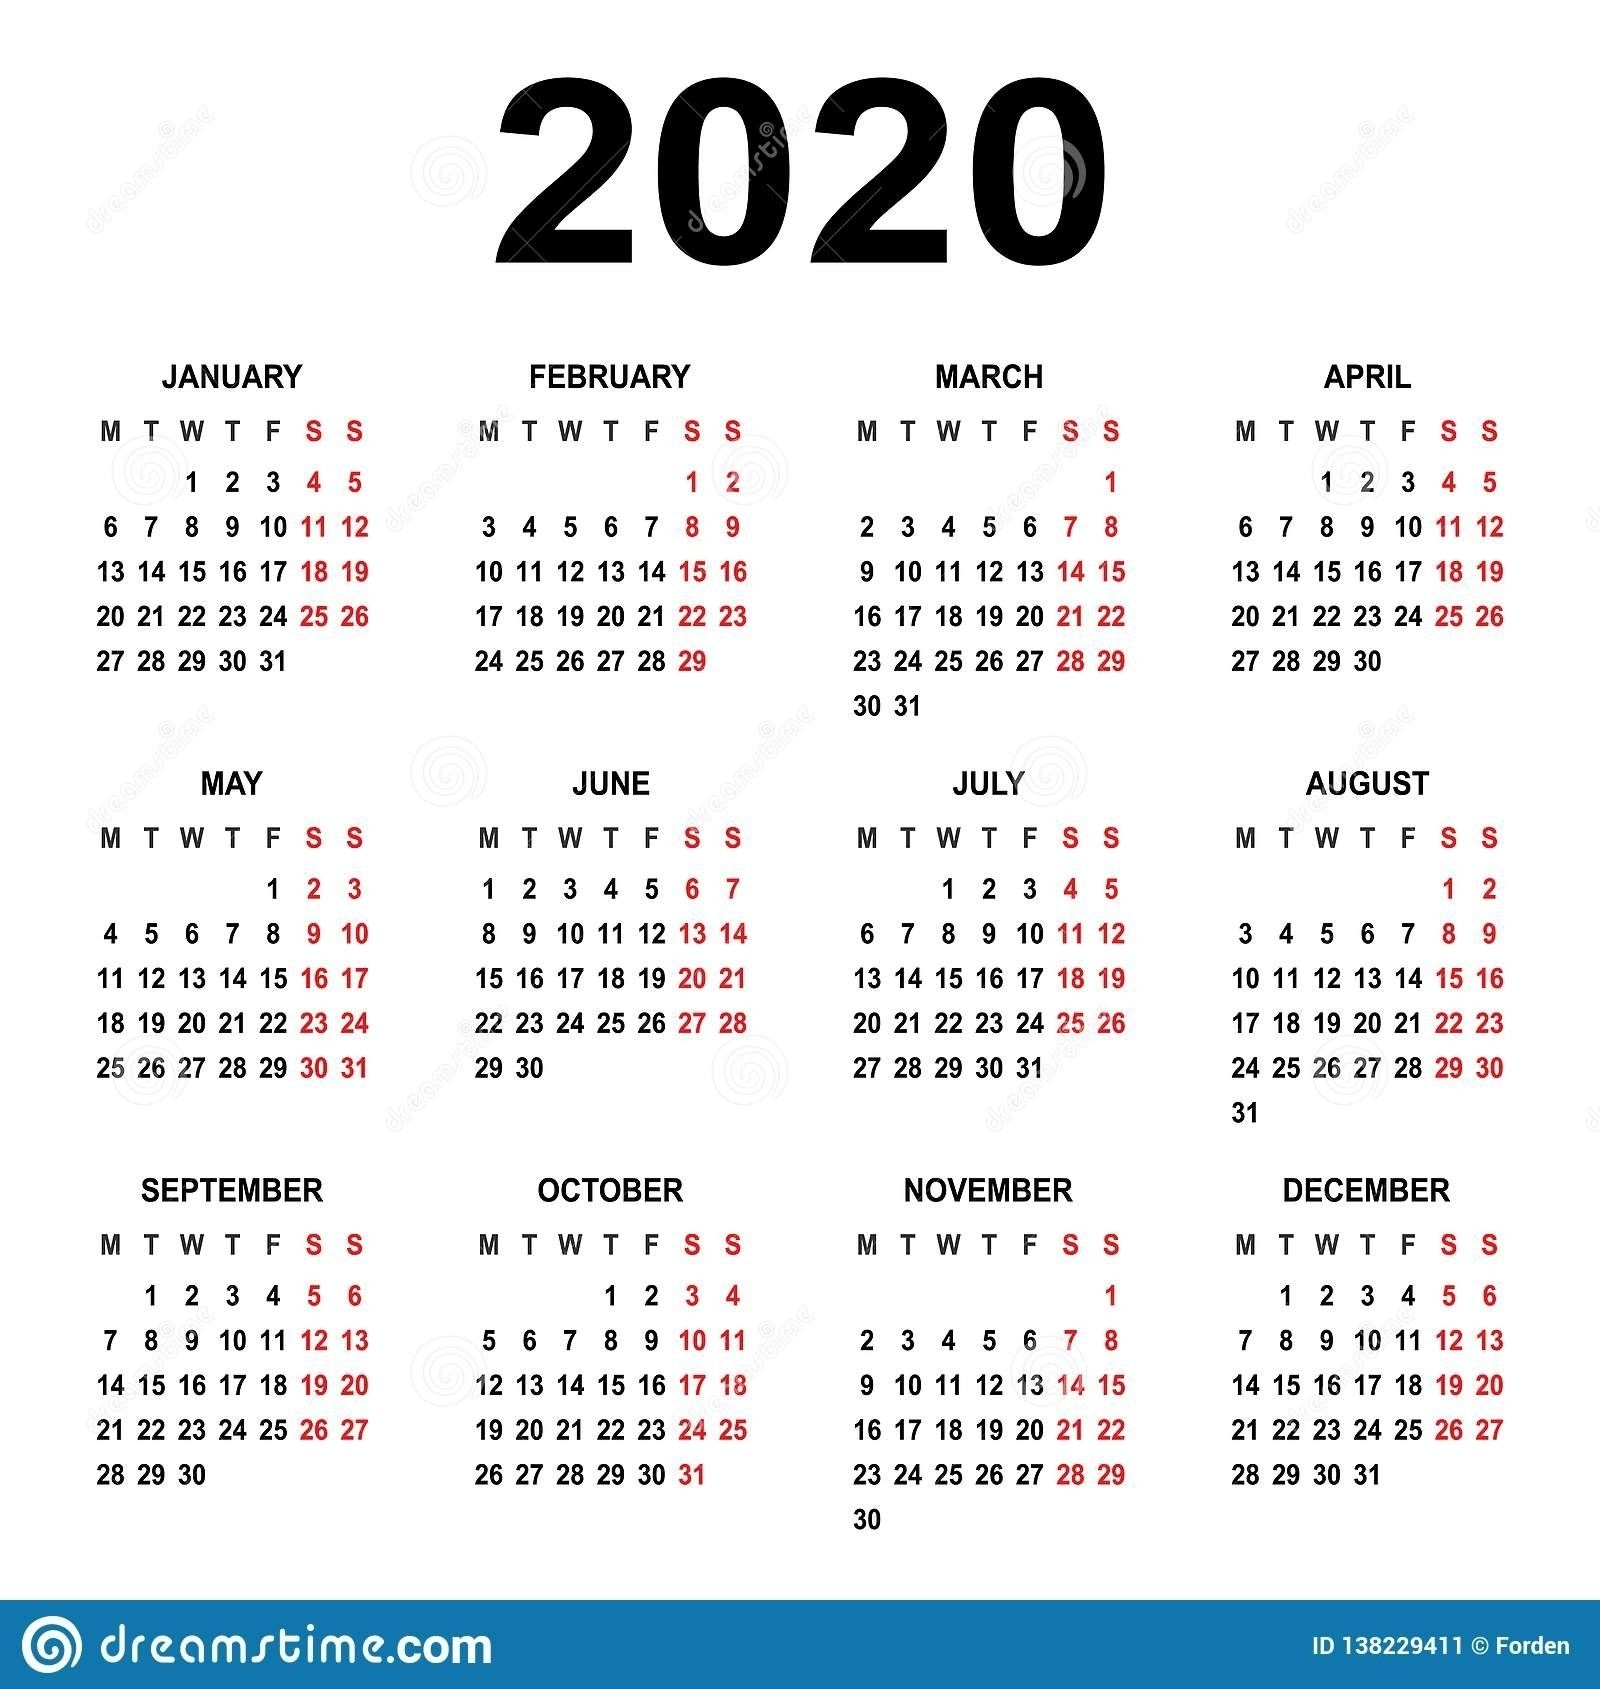 Impressive Free Yearly Calendar Start On Monday In 2020 throughout Free 2020 Calender Starting With Monday